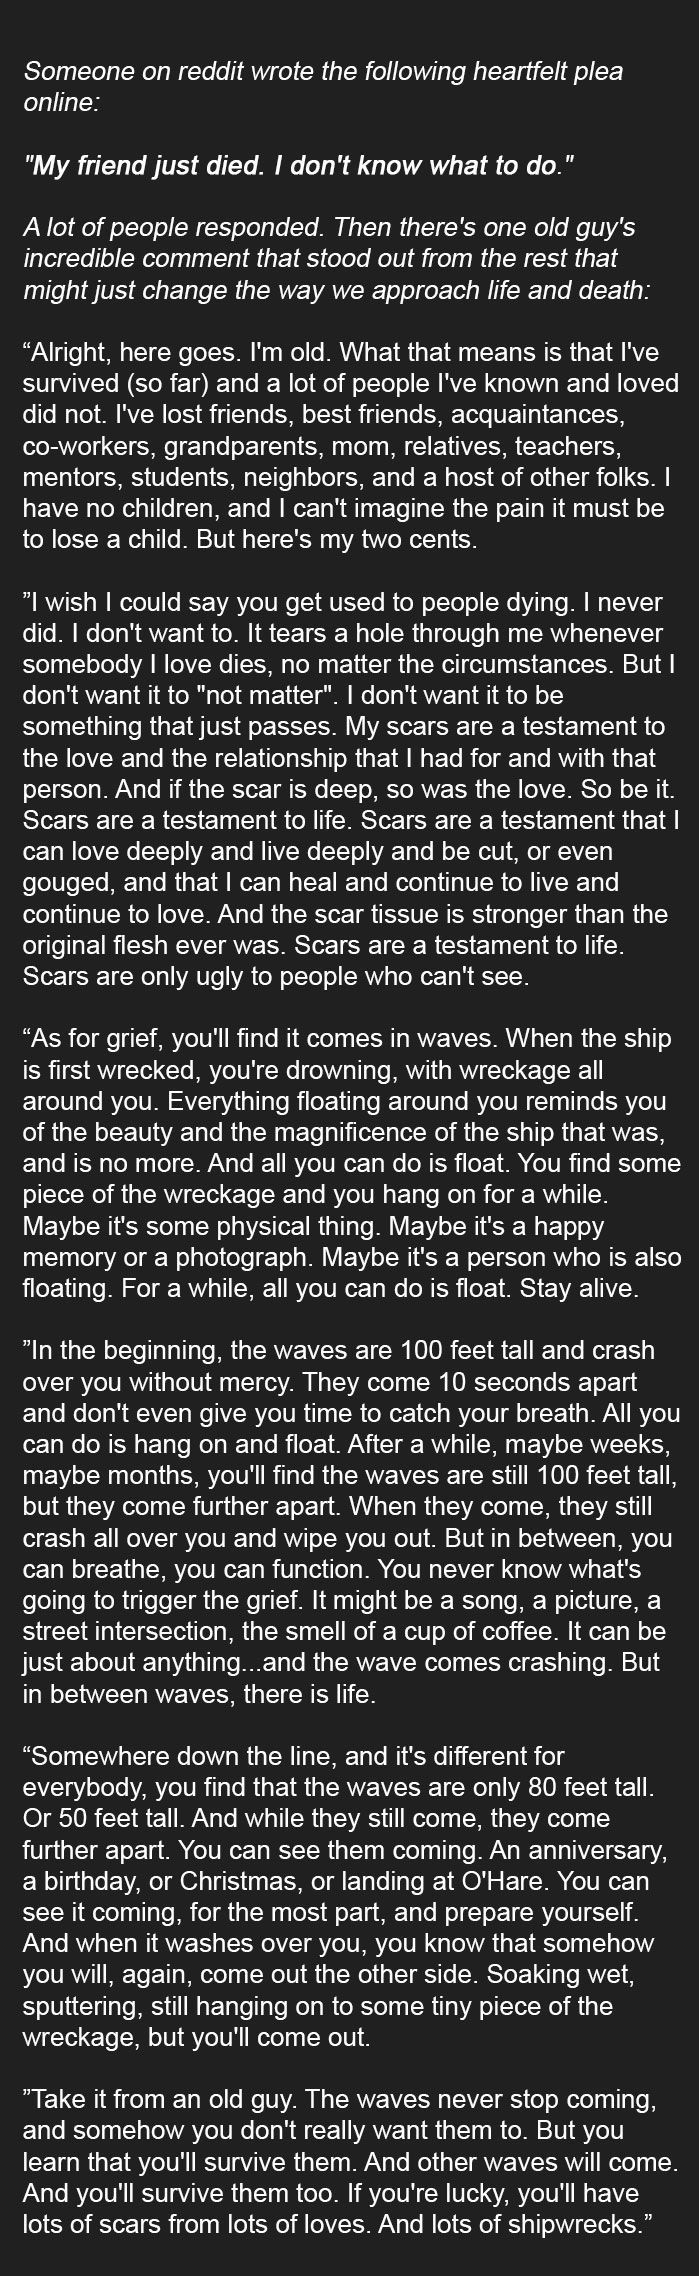 Someone asked online how to deal with the death of a friend. This was an elderly man's answer -